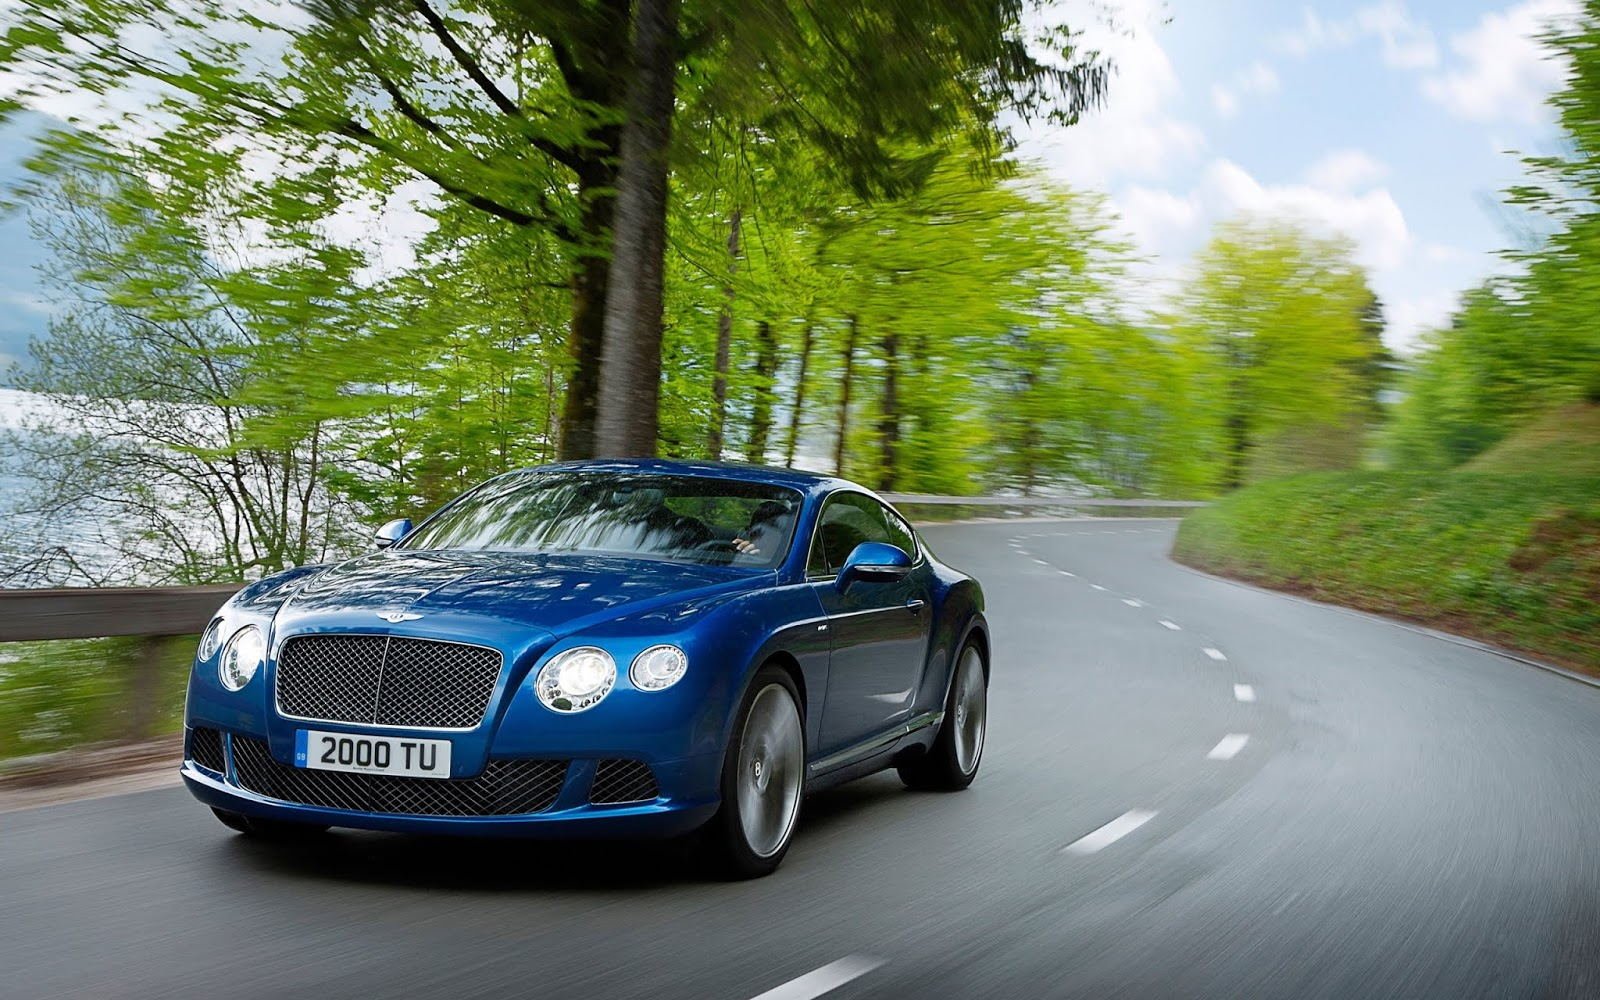 Top 10 Bentley Car Hd Wallpaper Images Pictures Greetings For